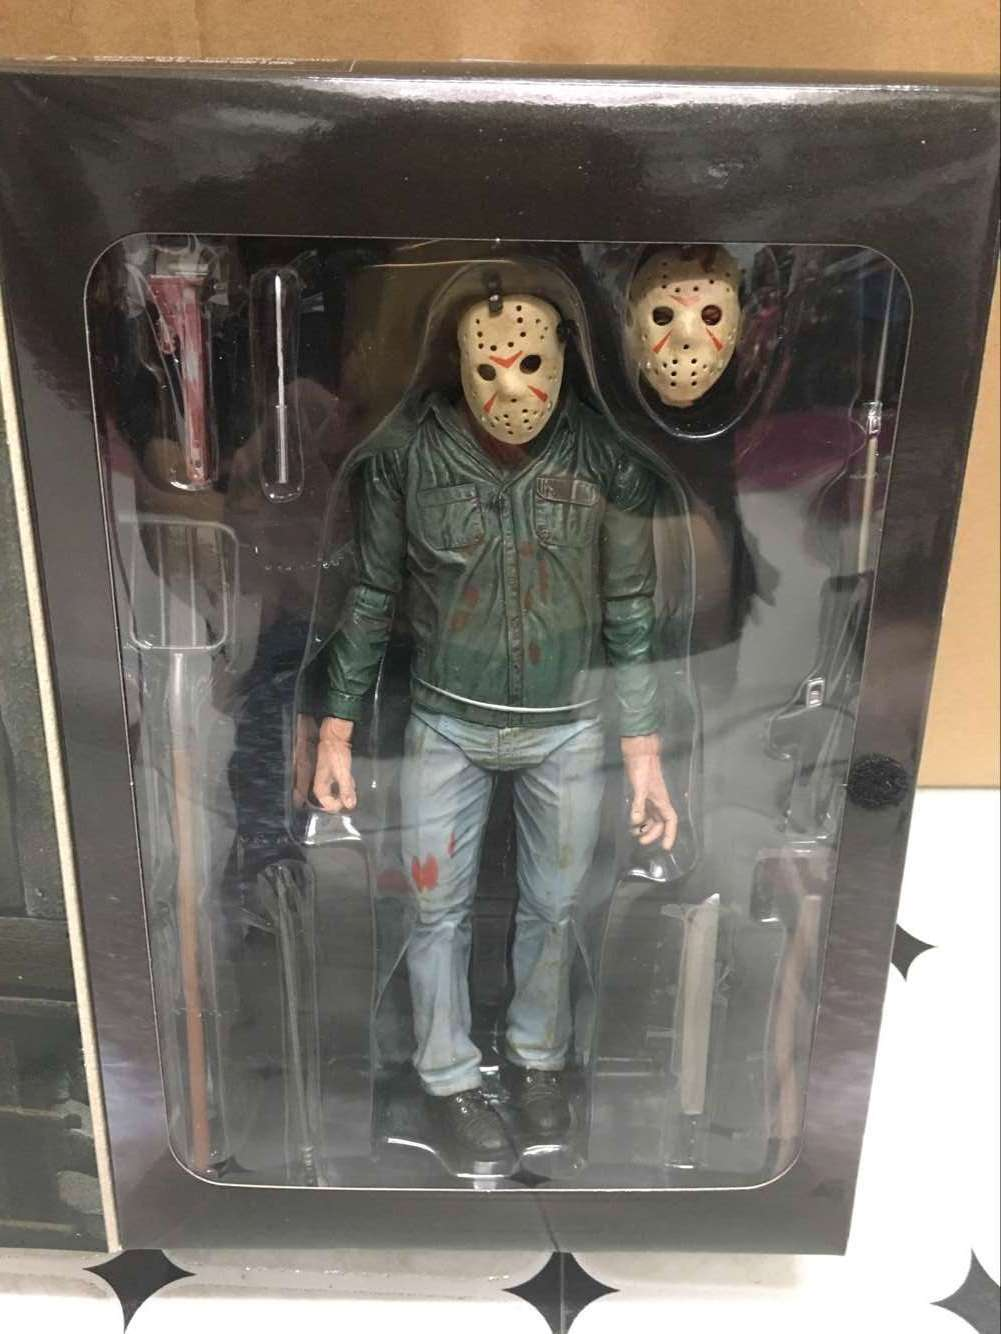 NECA A Nightmare on Elm Street 3: Dream Warriors PVC Action Figure Collectible Model Toy 7 Friday the 13th Jason Voorhees neca friday the 13th the final chapter jason voorhees pvc action figure collectible model toy 7inch 18cm